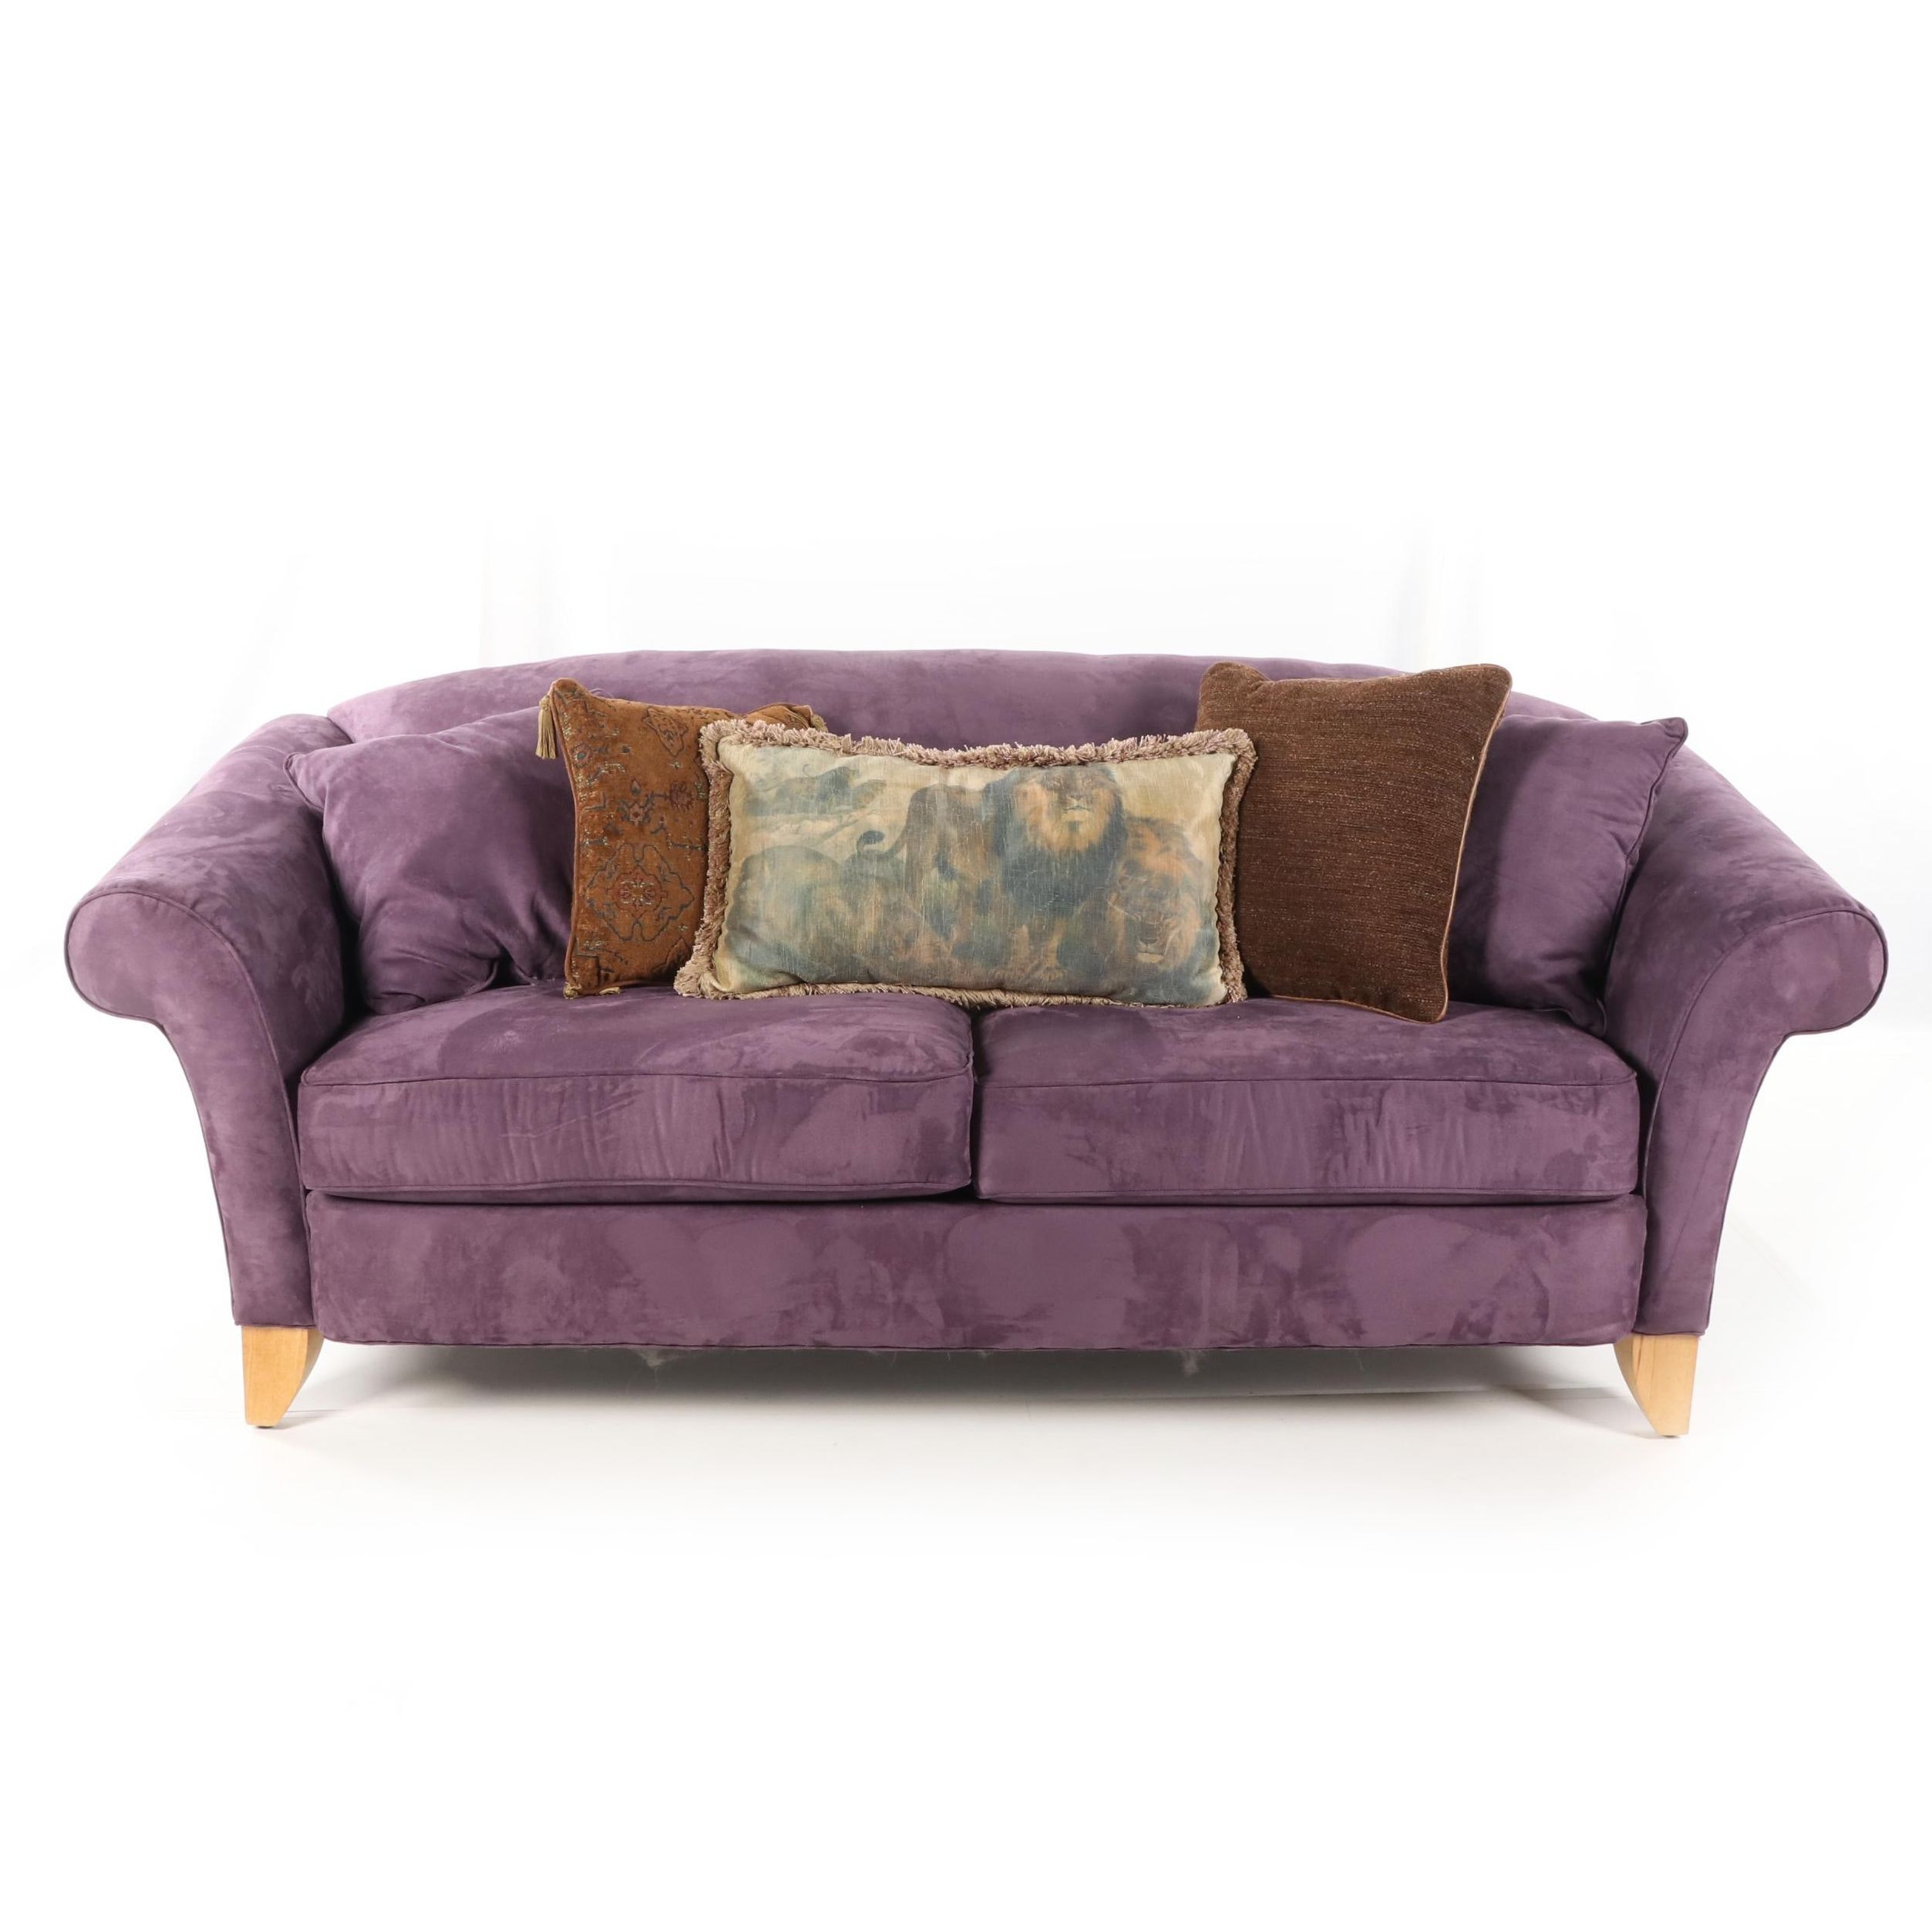 Contemporary Upholstered Sofa by Rowe